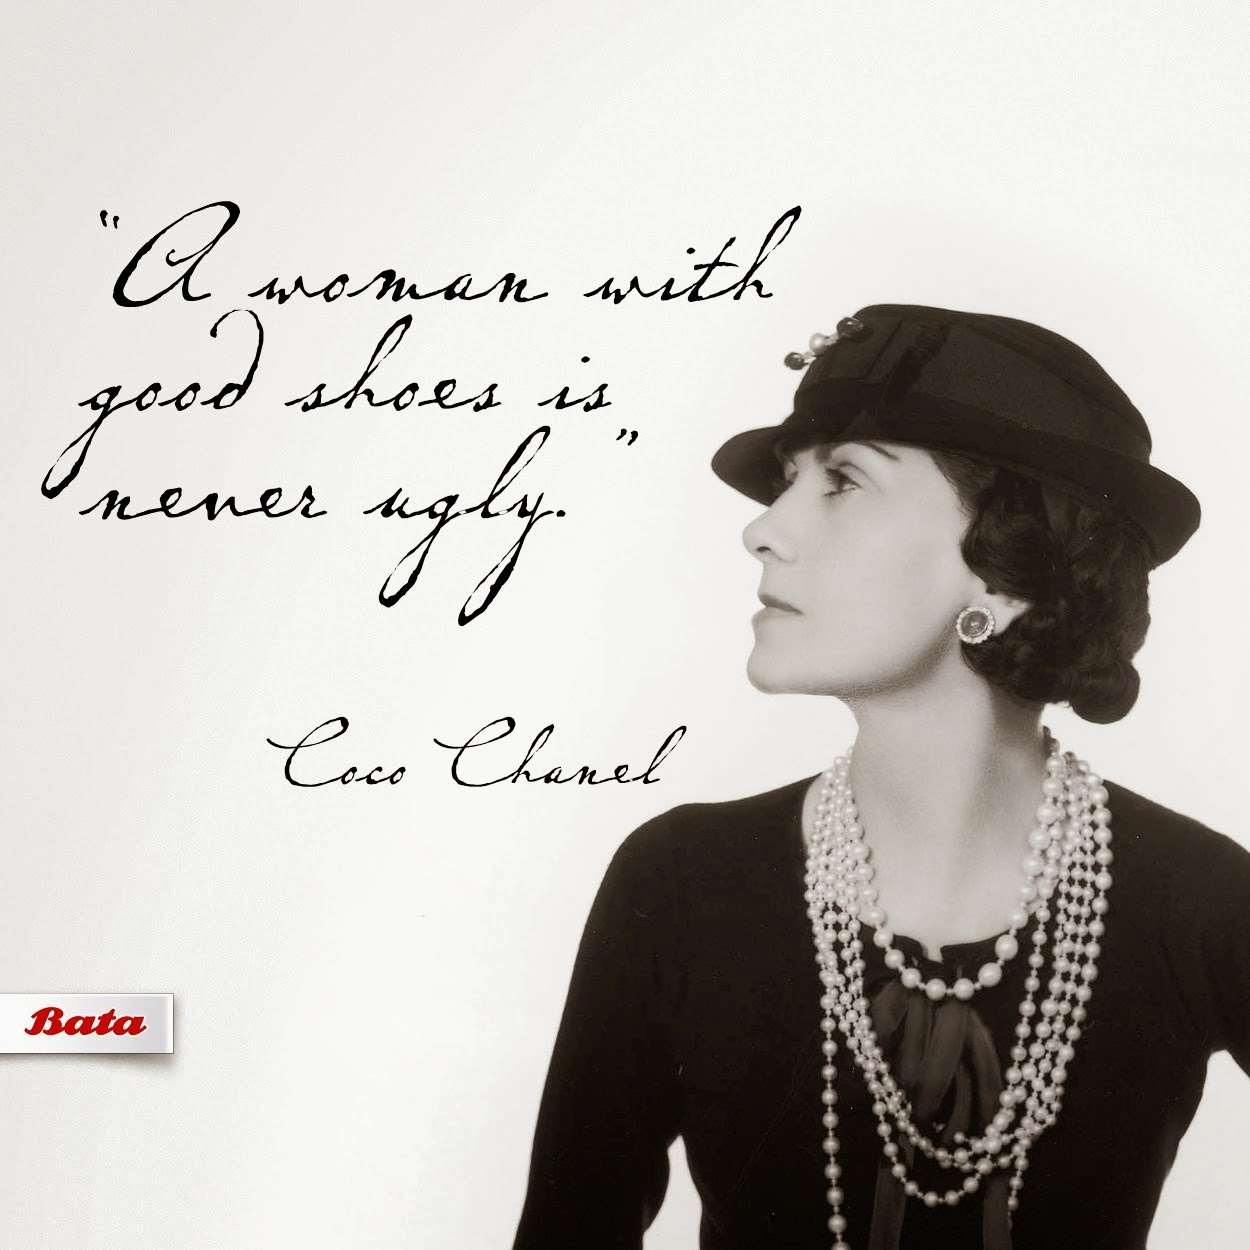 Coco Chanel Famous Quotes: Casual Clothing Coco Chanel Quotes. QuotesGram